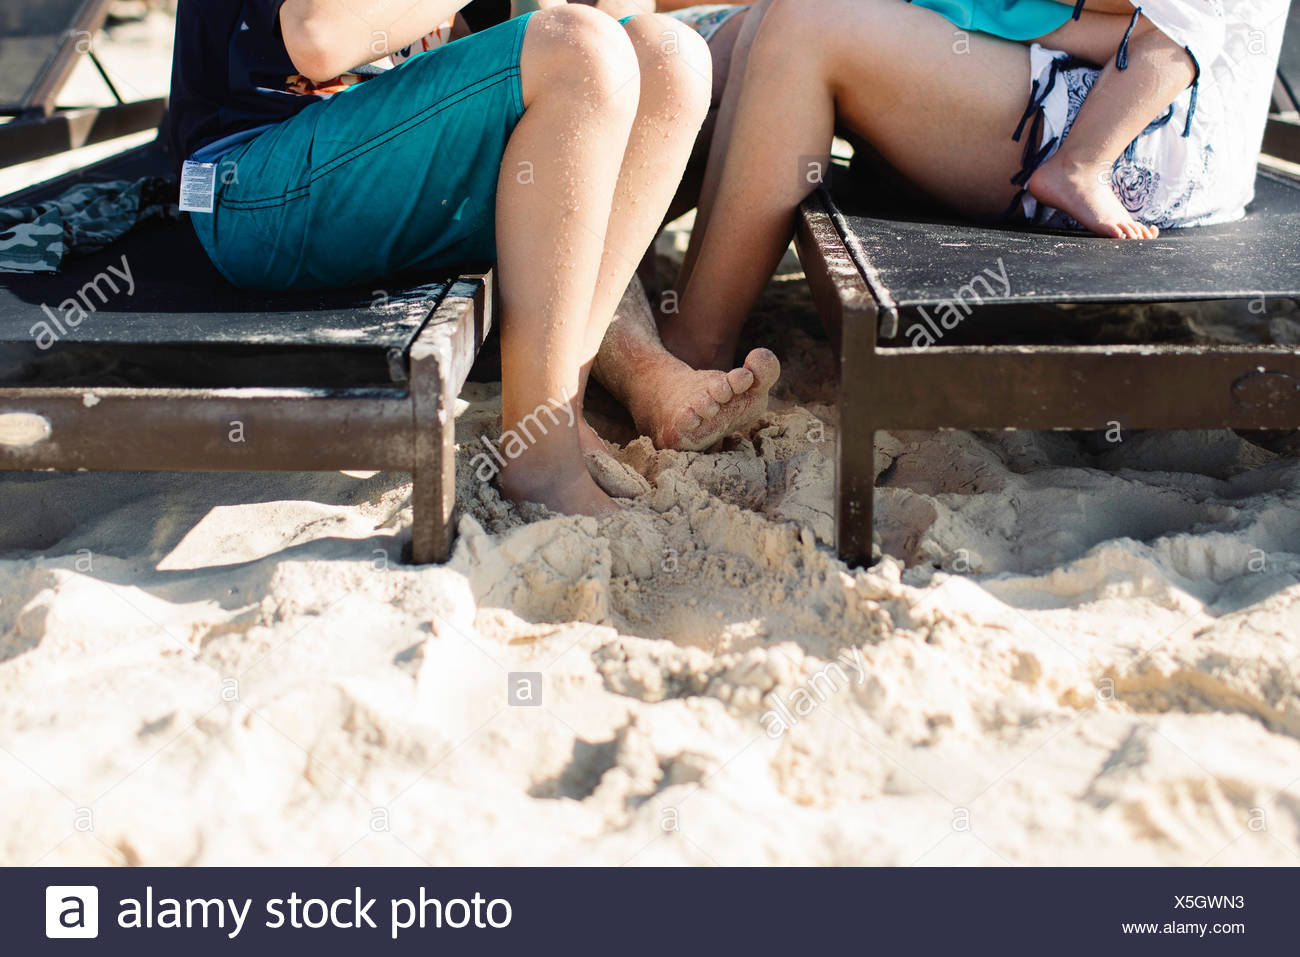 Mother and son sitting on sun loungers, mother holding young daughter, low section - Stock Image